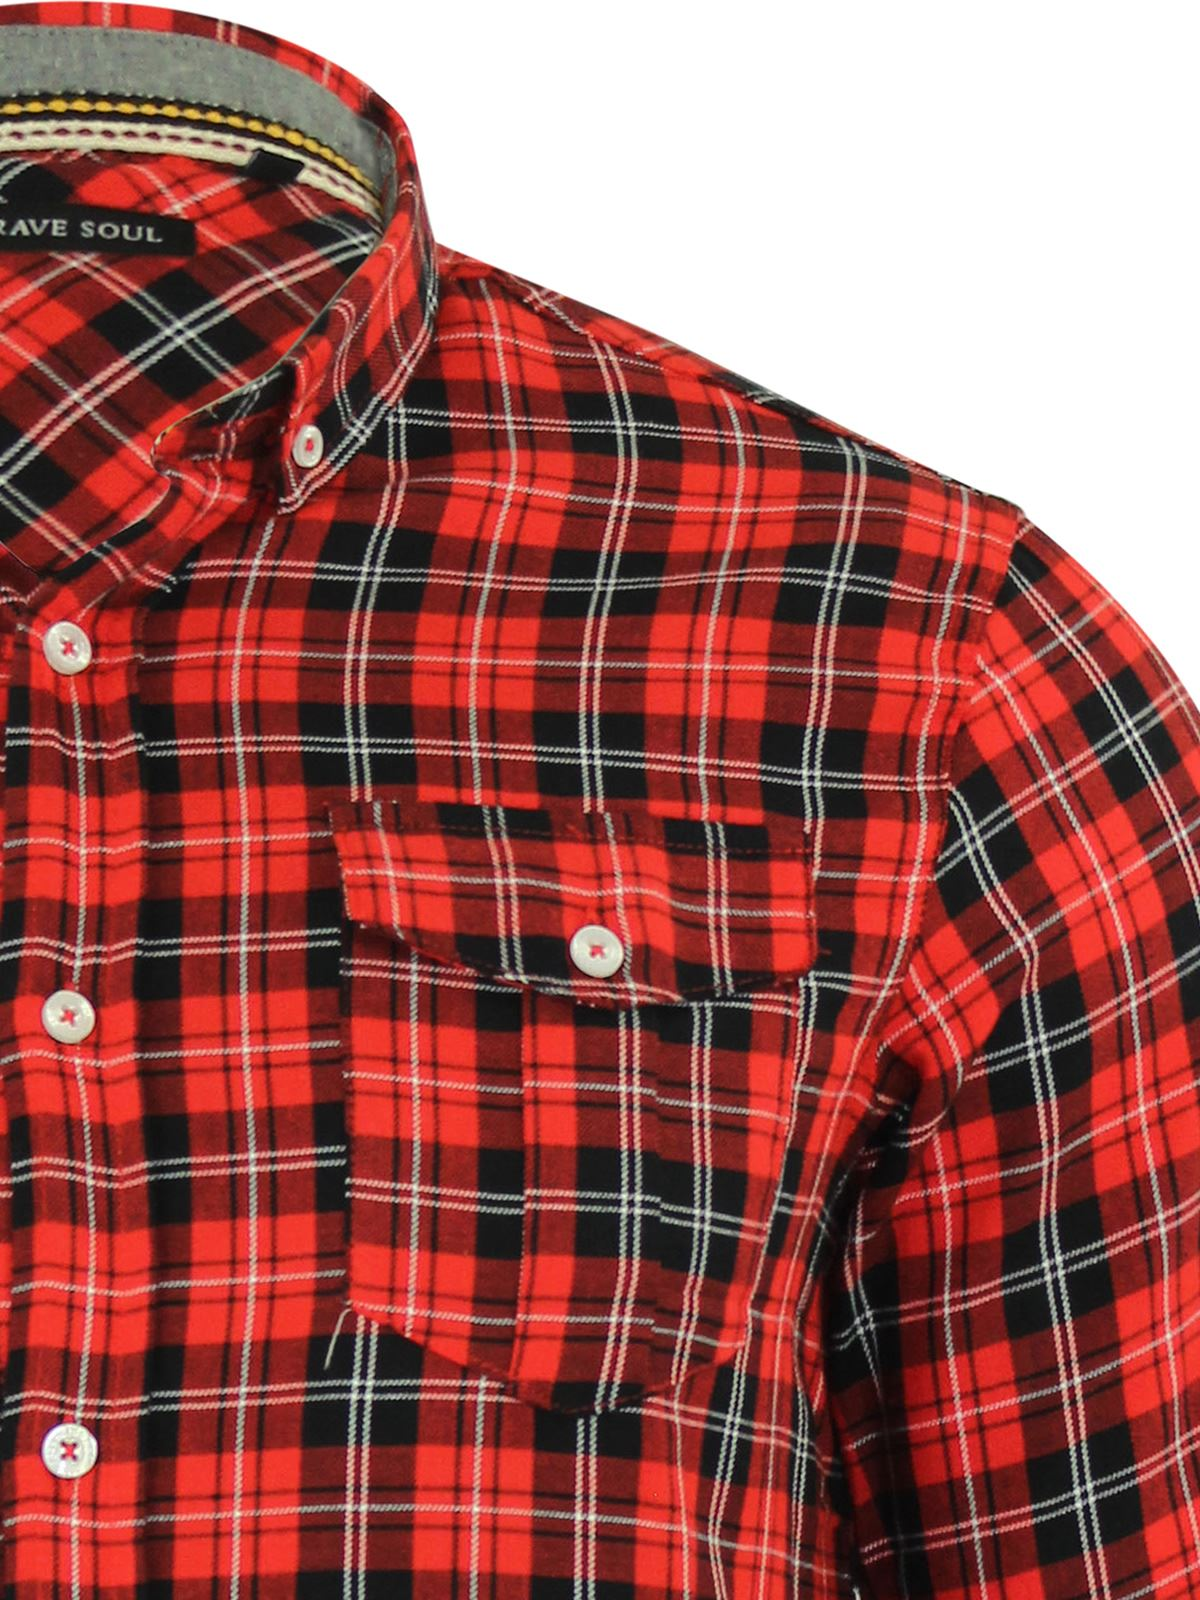 Mens-Check-Shirt-Brave-Soul-Flannel-Brushed-Cotton-Long-Sleeve-Casual-Top thumbnail 61